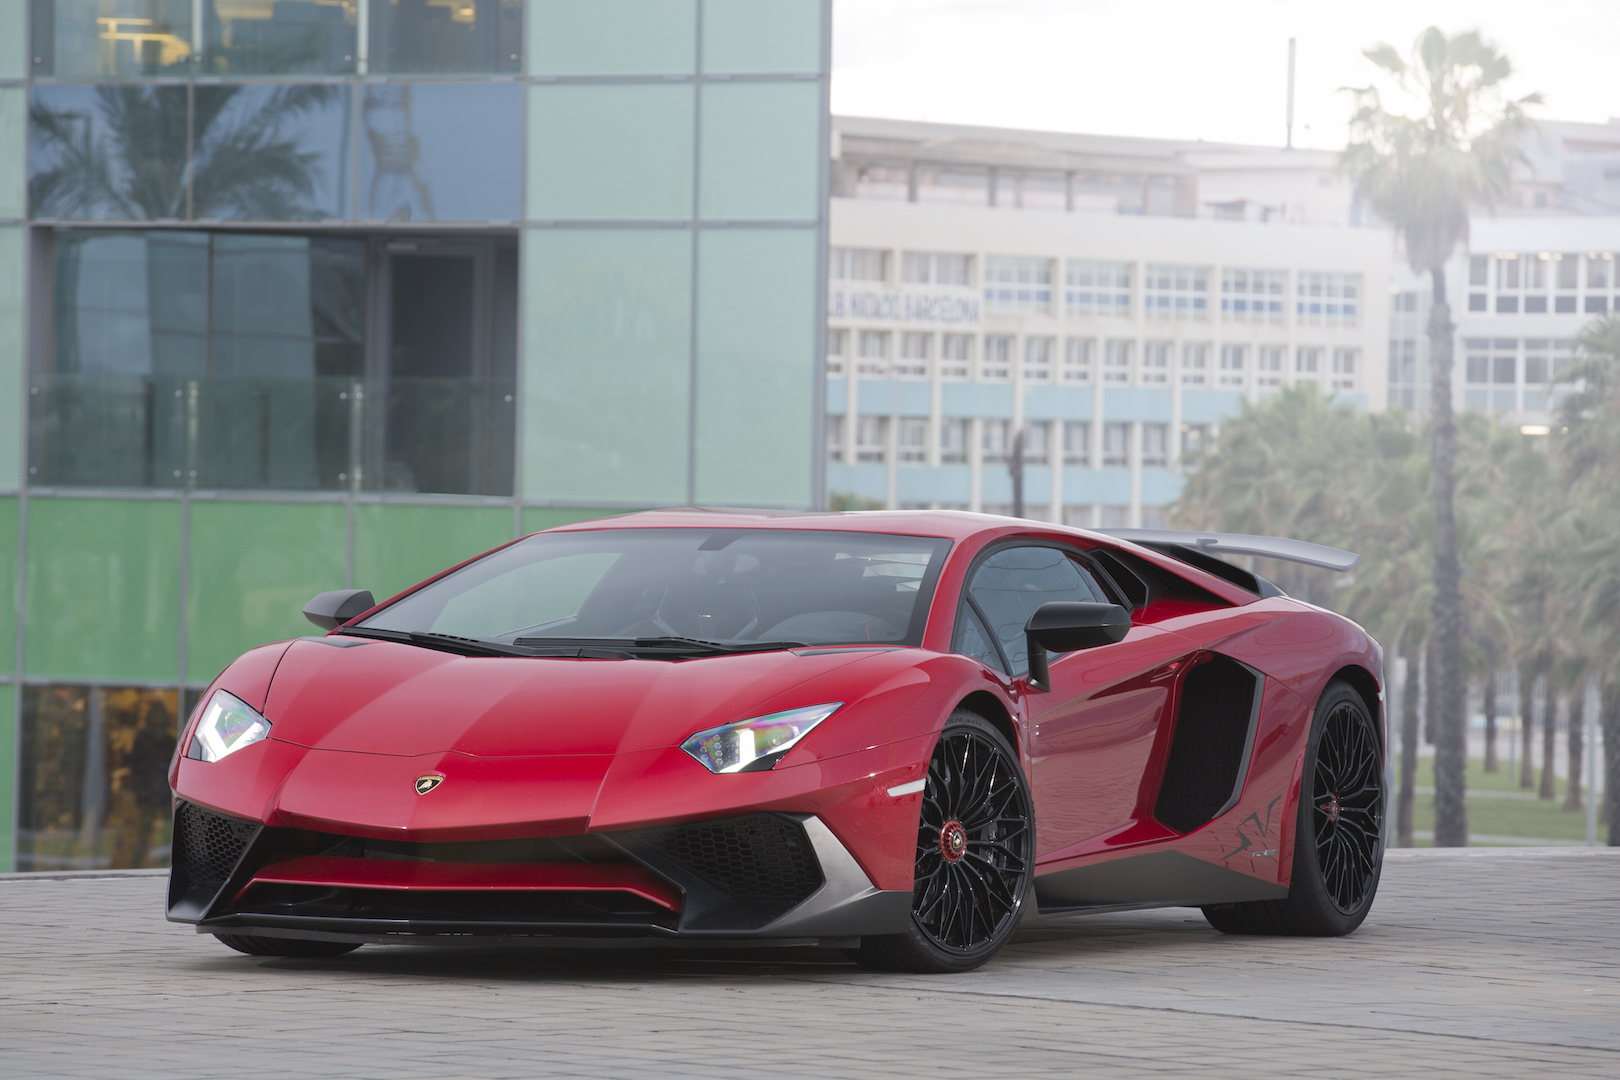 2016 Lamborghini Aventador Review, Ratings, Specs, Prices ...